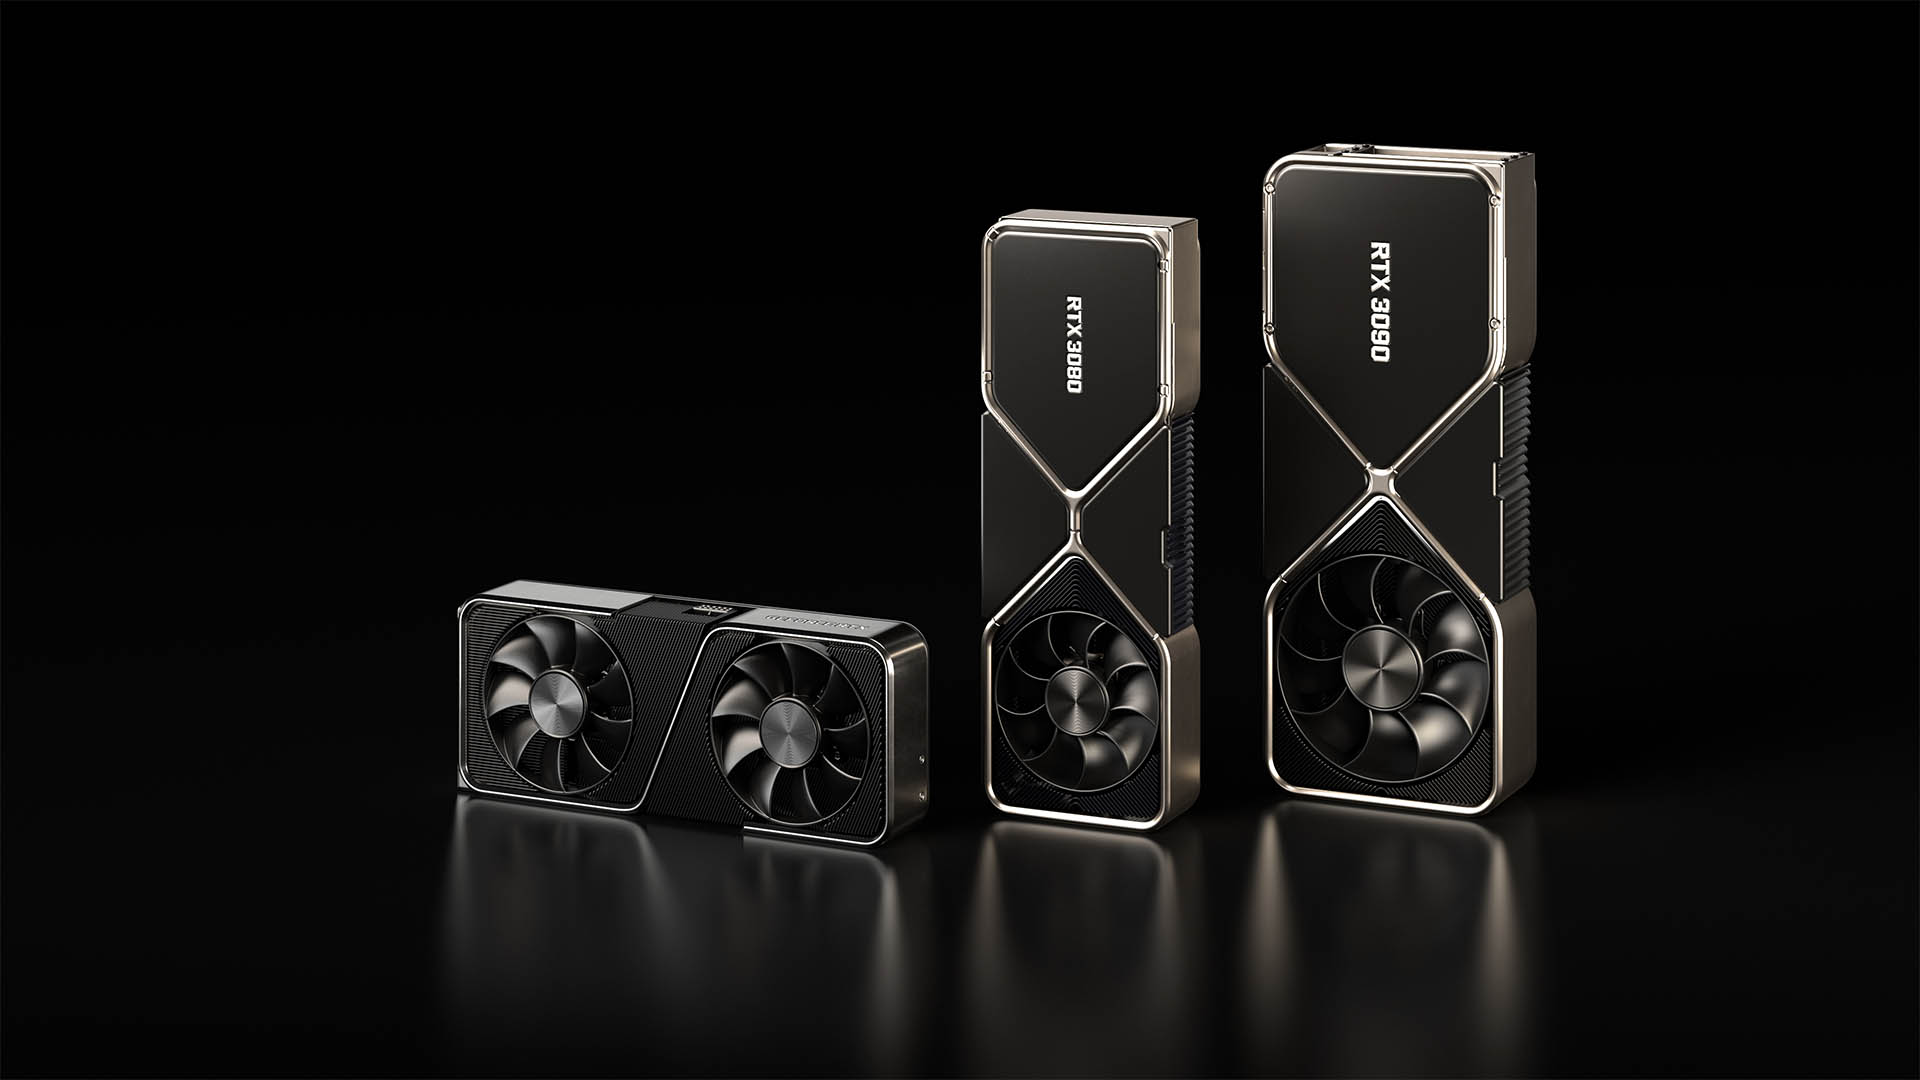 Nvidia puts a hold on RTX 3080 and RTX 3090 Founders Edition sales from its webstore